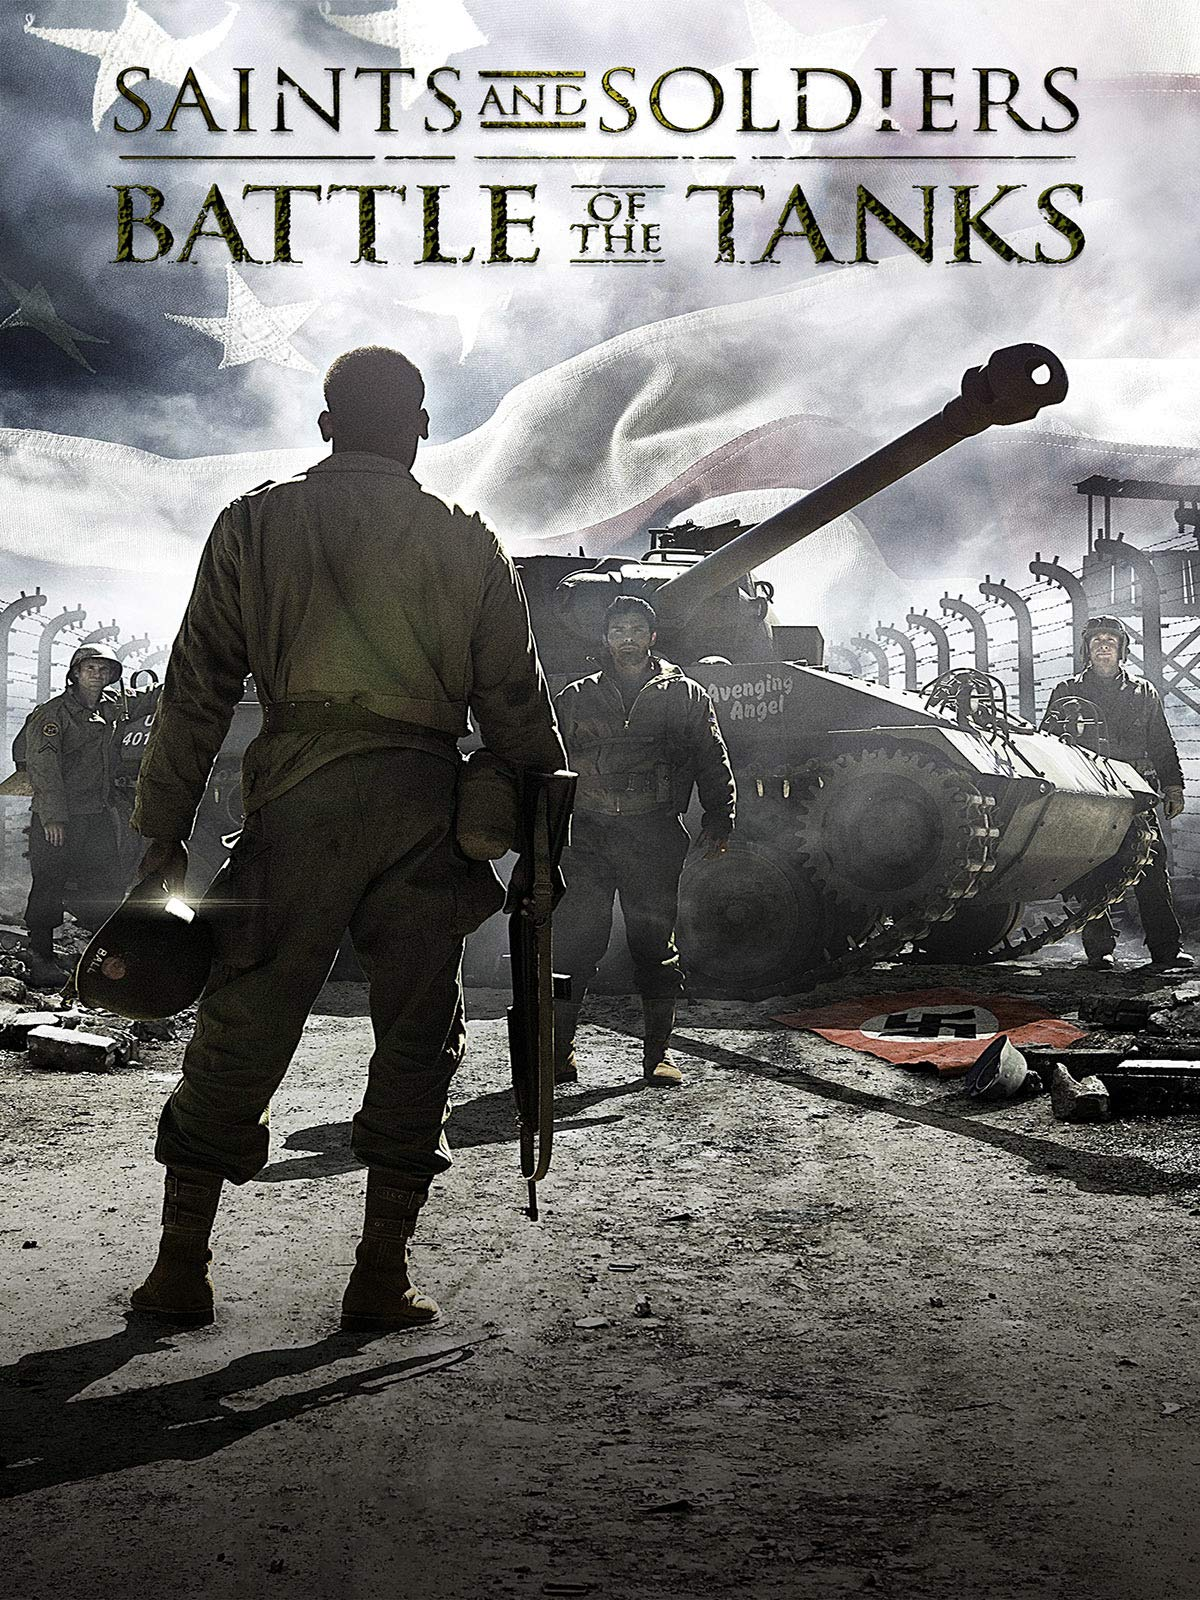 Saints and Soldiers - Battle of the Tanks